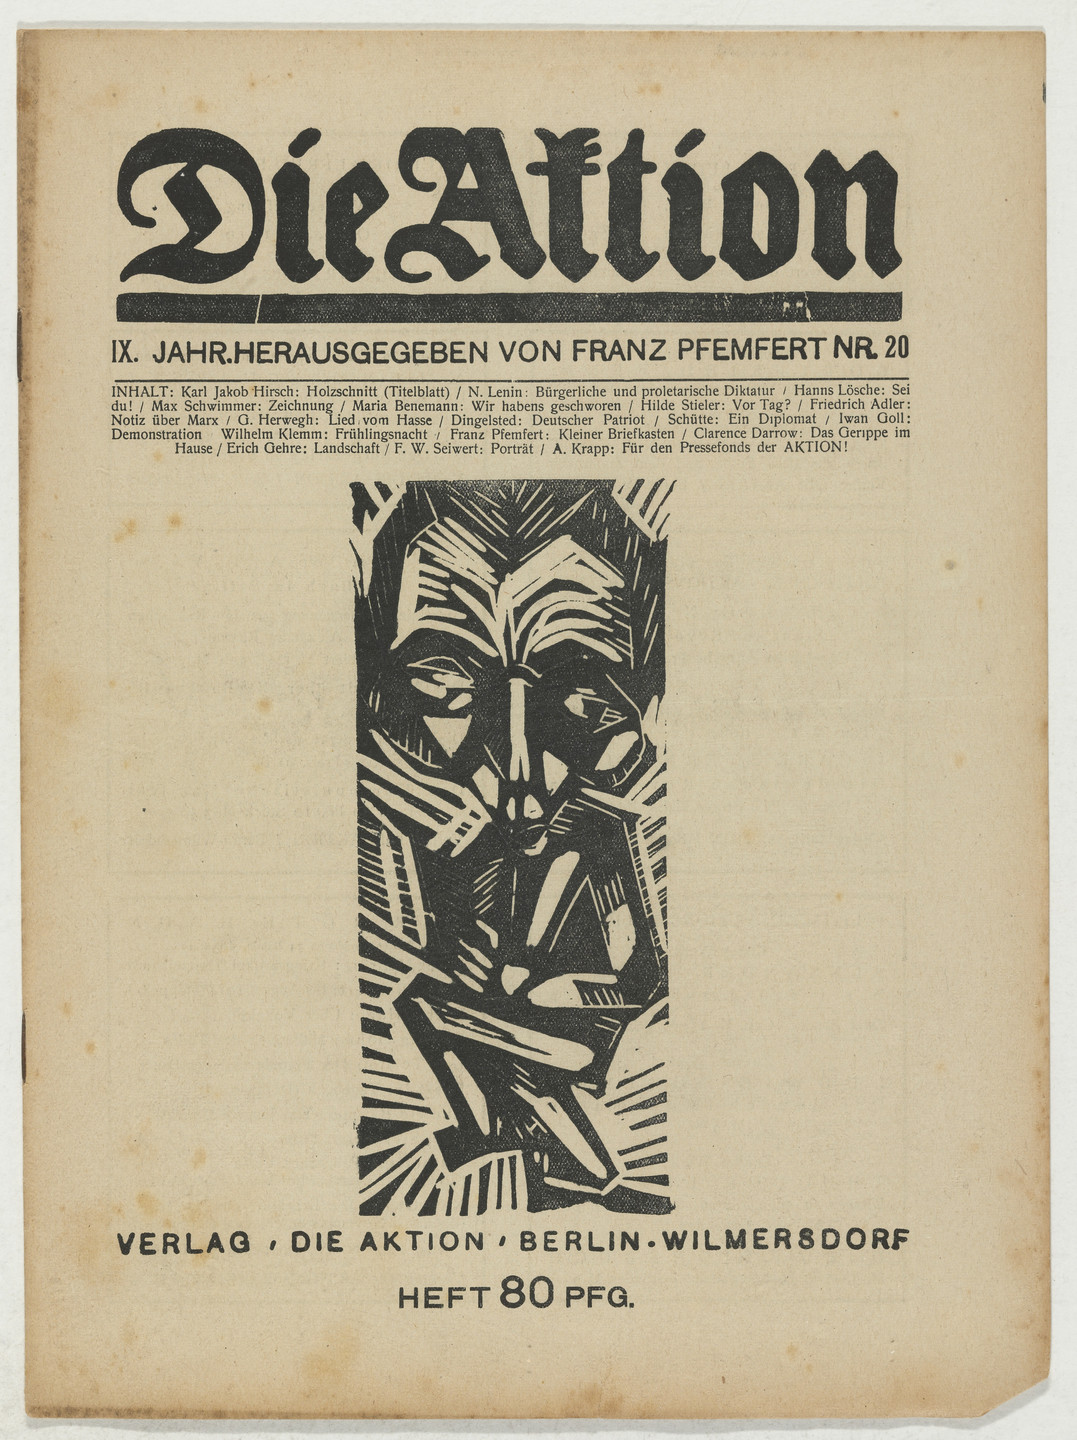 Karl Jacob Hirsch, Erich Gehre, Franz Wilhelm Seiwert, A. Krapp. Die Aktion, vol. 9, no. 20. May 24, 1919